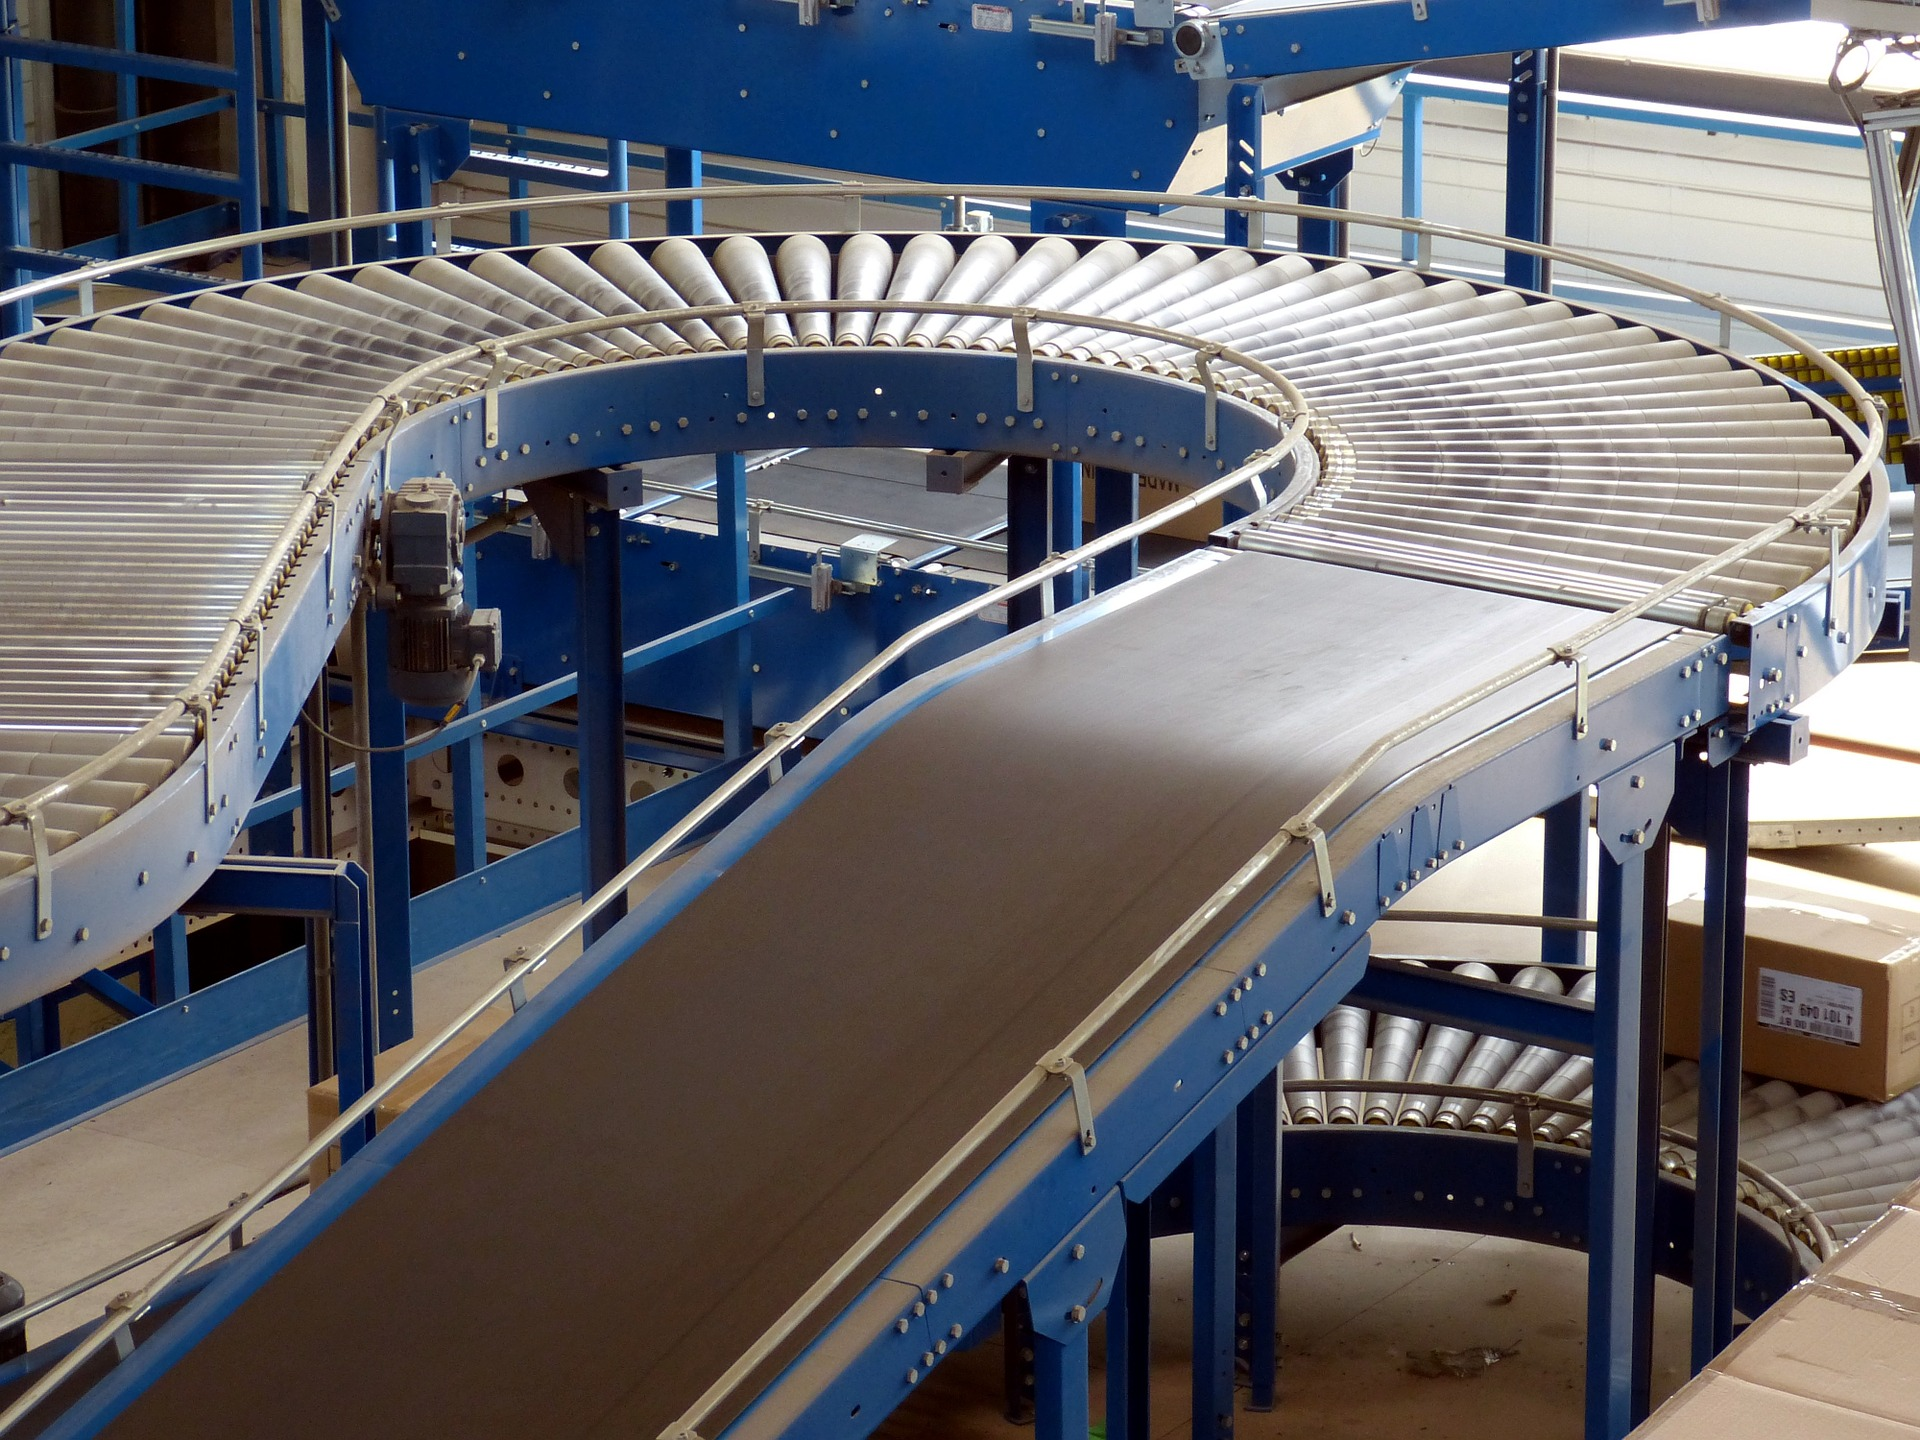 Image of a curving conveyor belt in a factory | TAB Bank